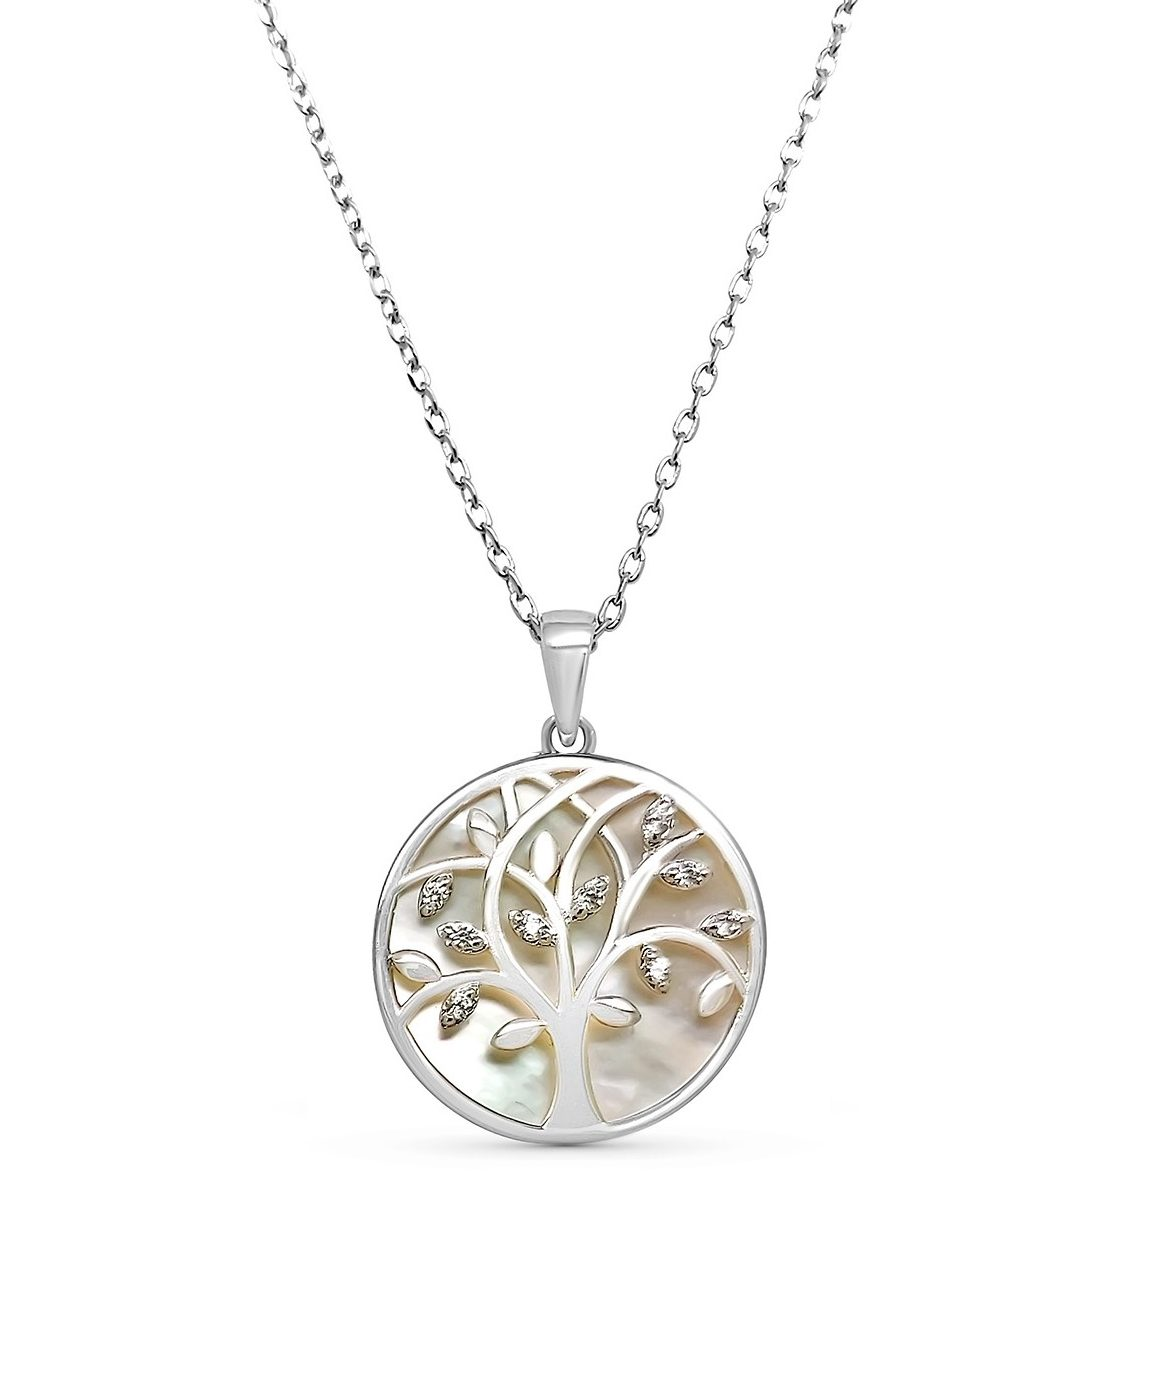 Tree of life Mother of Pearl e1628946489722